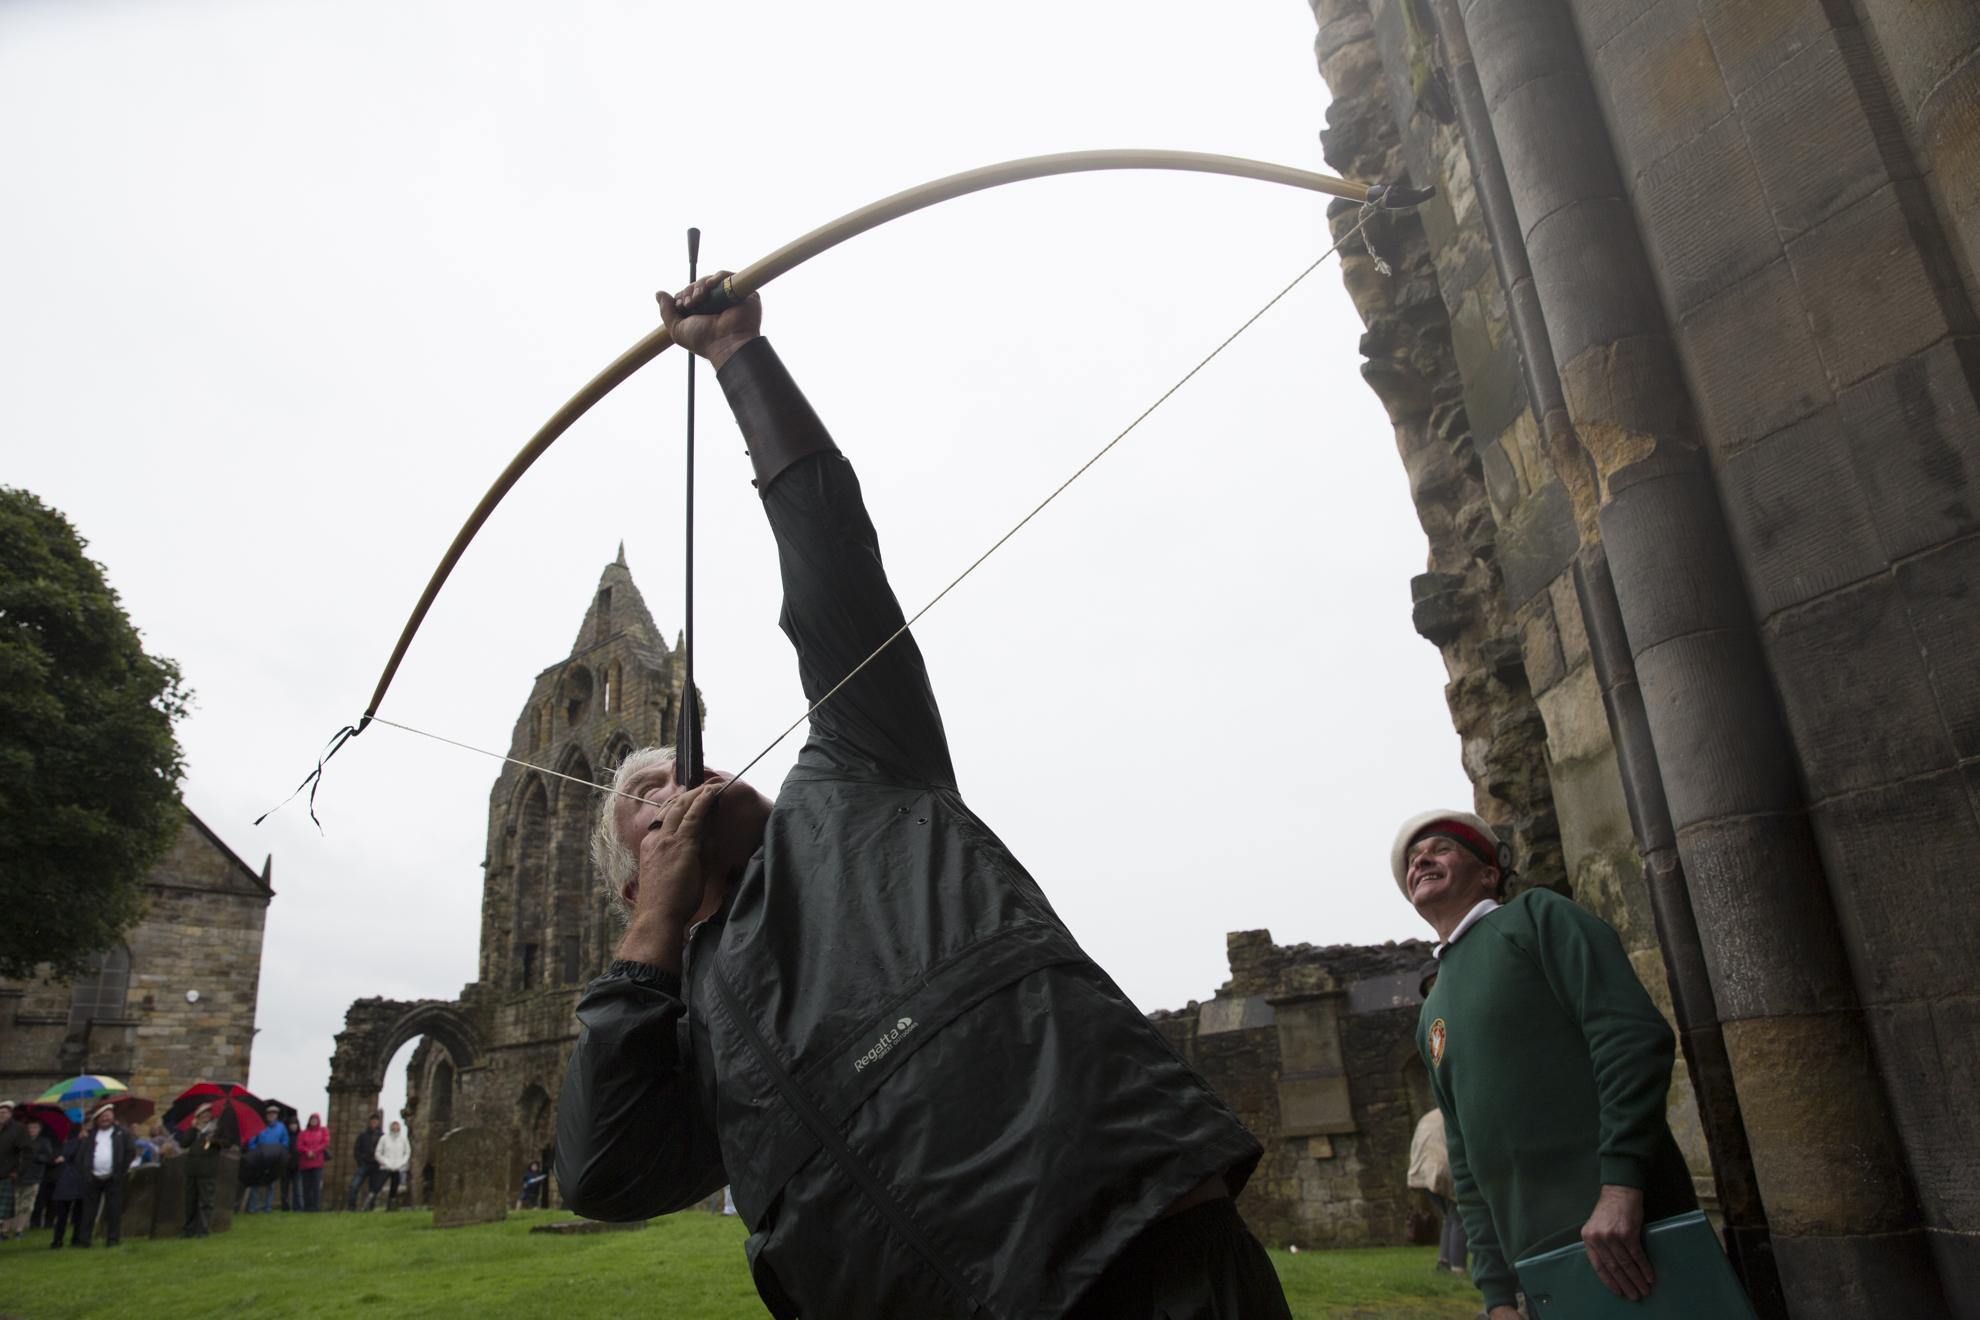 British Longbow Society member Kim Manuel, of Somset, England, aims for the wooden pigeon at the top of the Kilwinning Abbey Tower during the open Papingo in Kilwinning, Scotland.